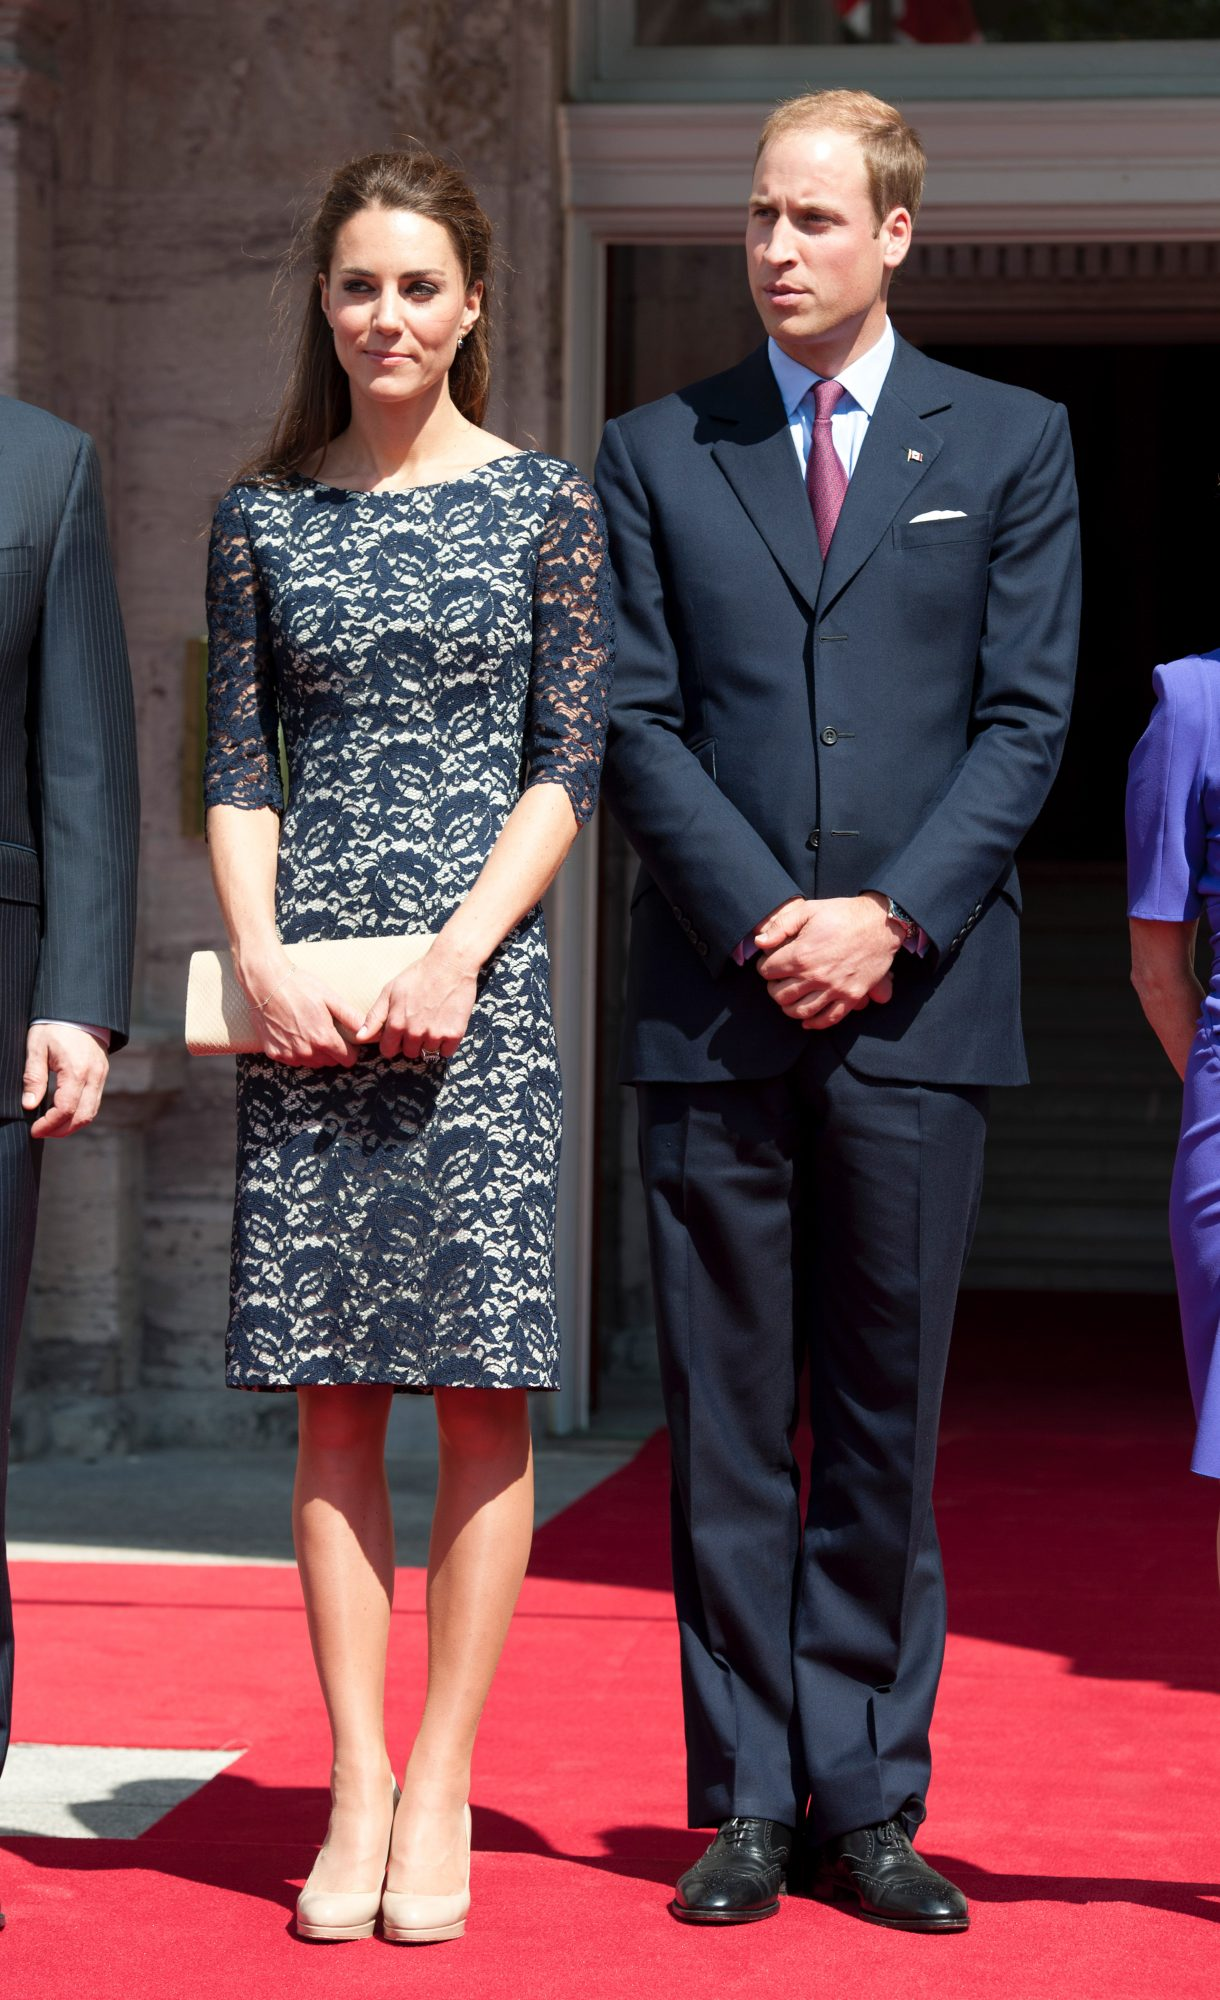 The Duke And Duchess Of Cambridge North American Royal Visit - Day 1